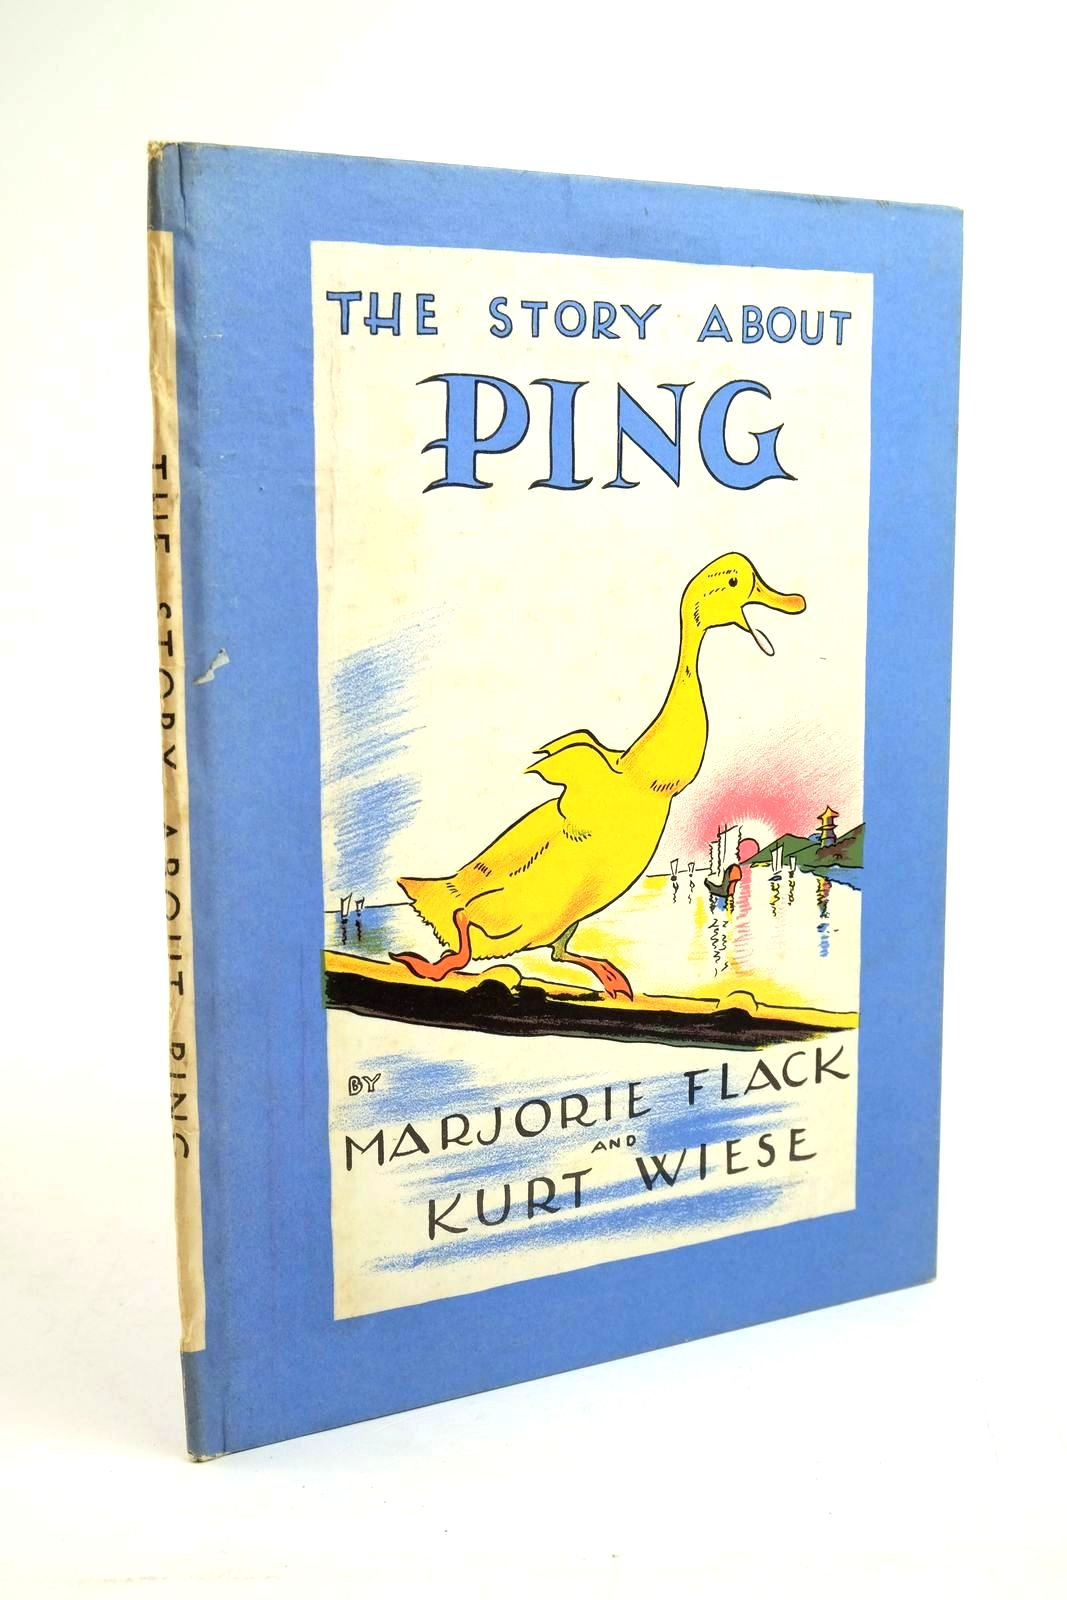 Photo of THE STORY ABOUT PING written by Flack, Marjorie illustrated by Wiese, Kurt published by The Bodley Head (STOCK CODE: 1321539)  for sale by Stella & Rose's Books